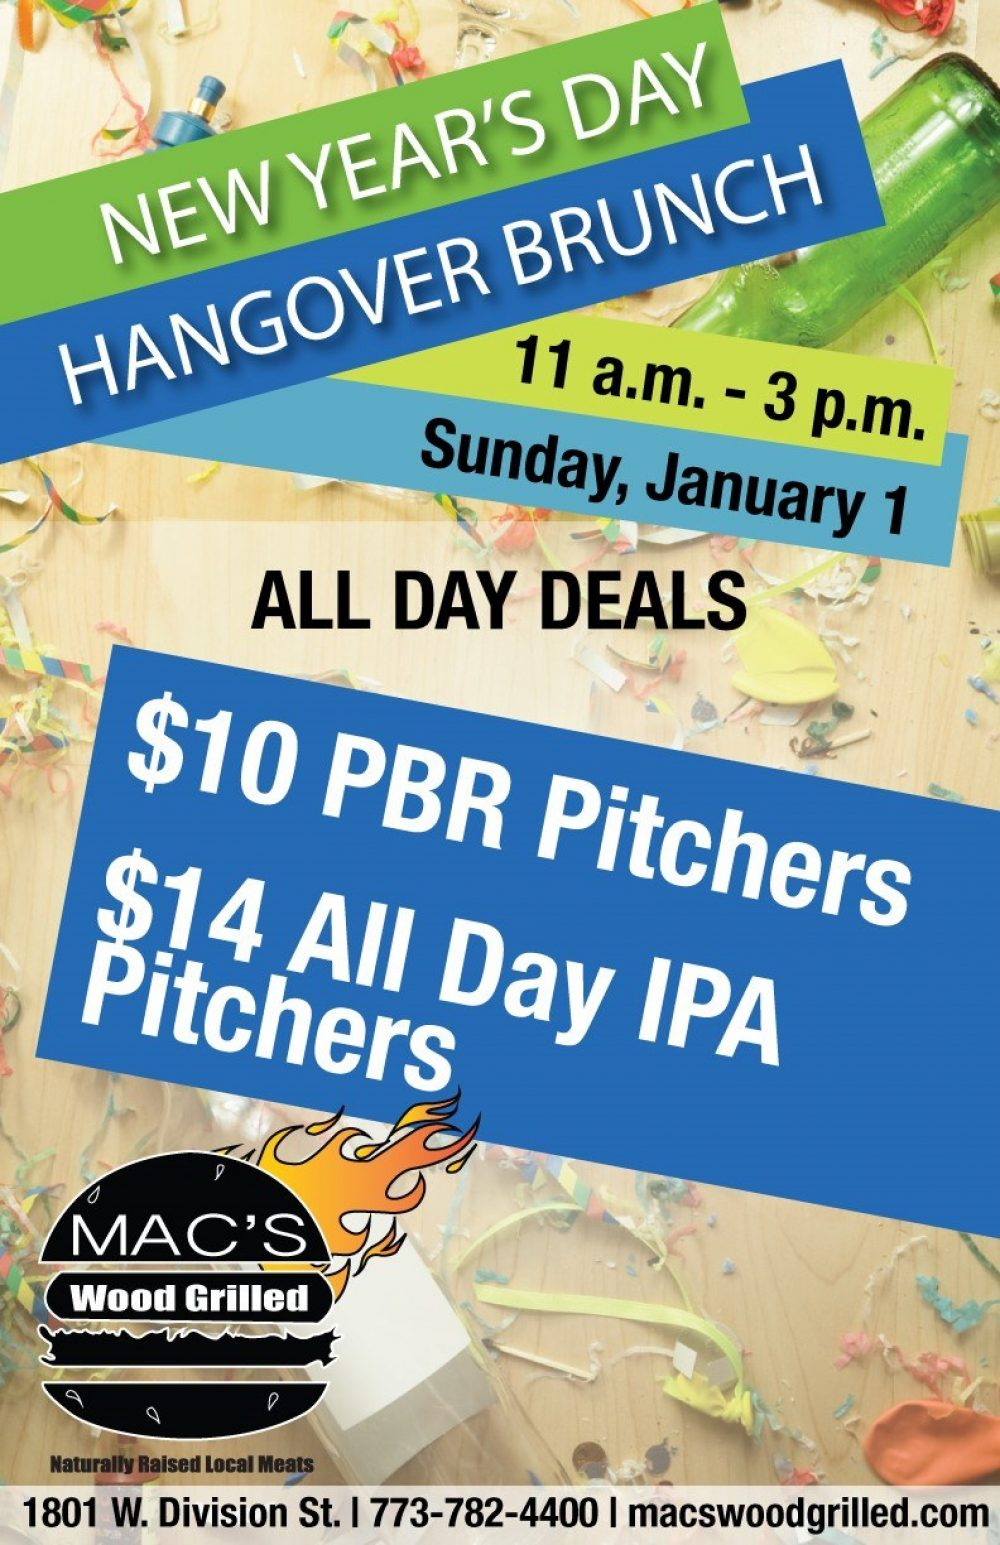 New Year's Day Hangover Brunch at Mac's Wood Grilled